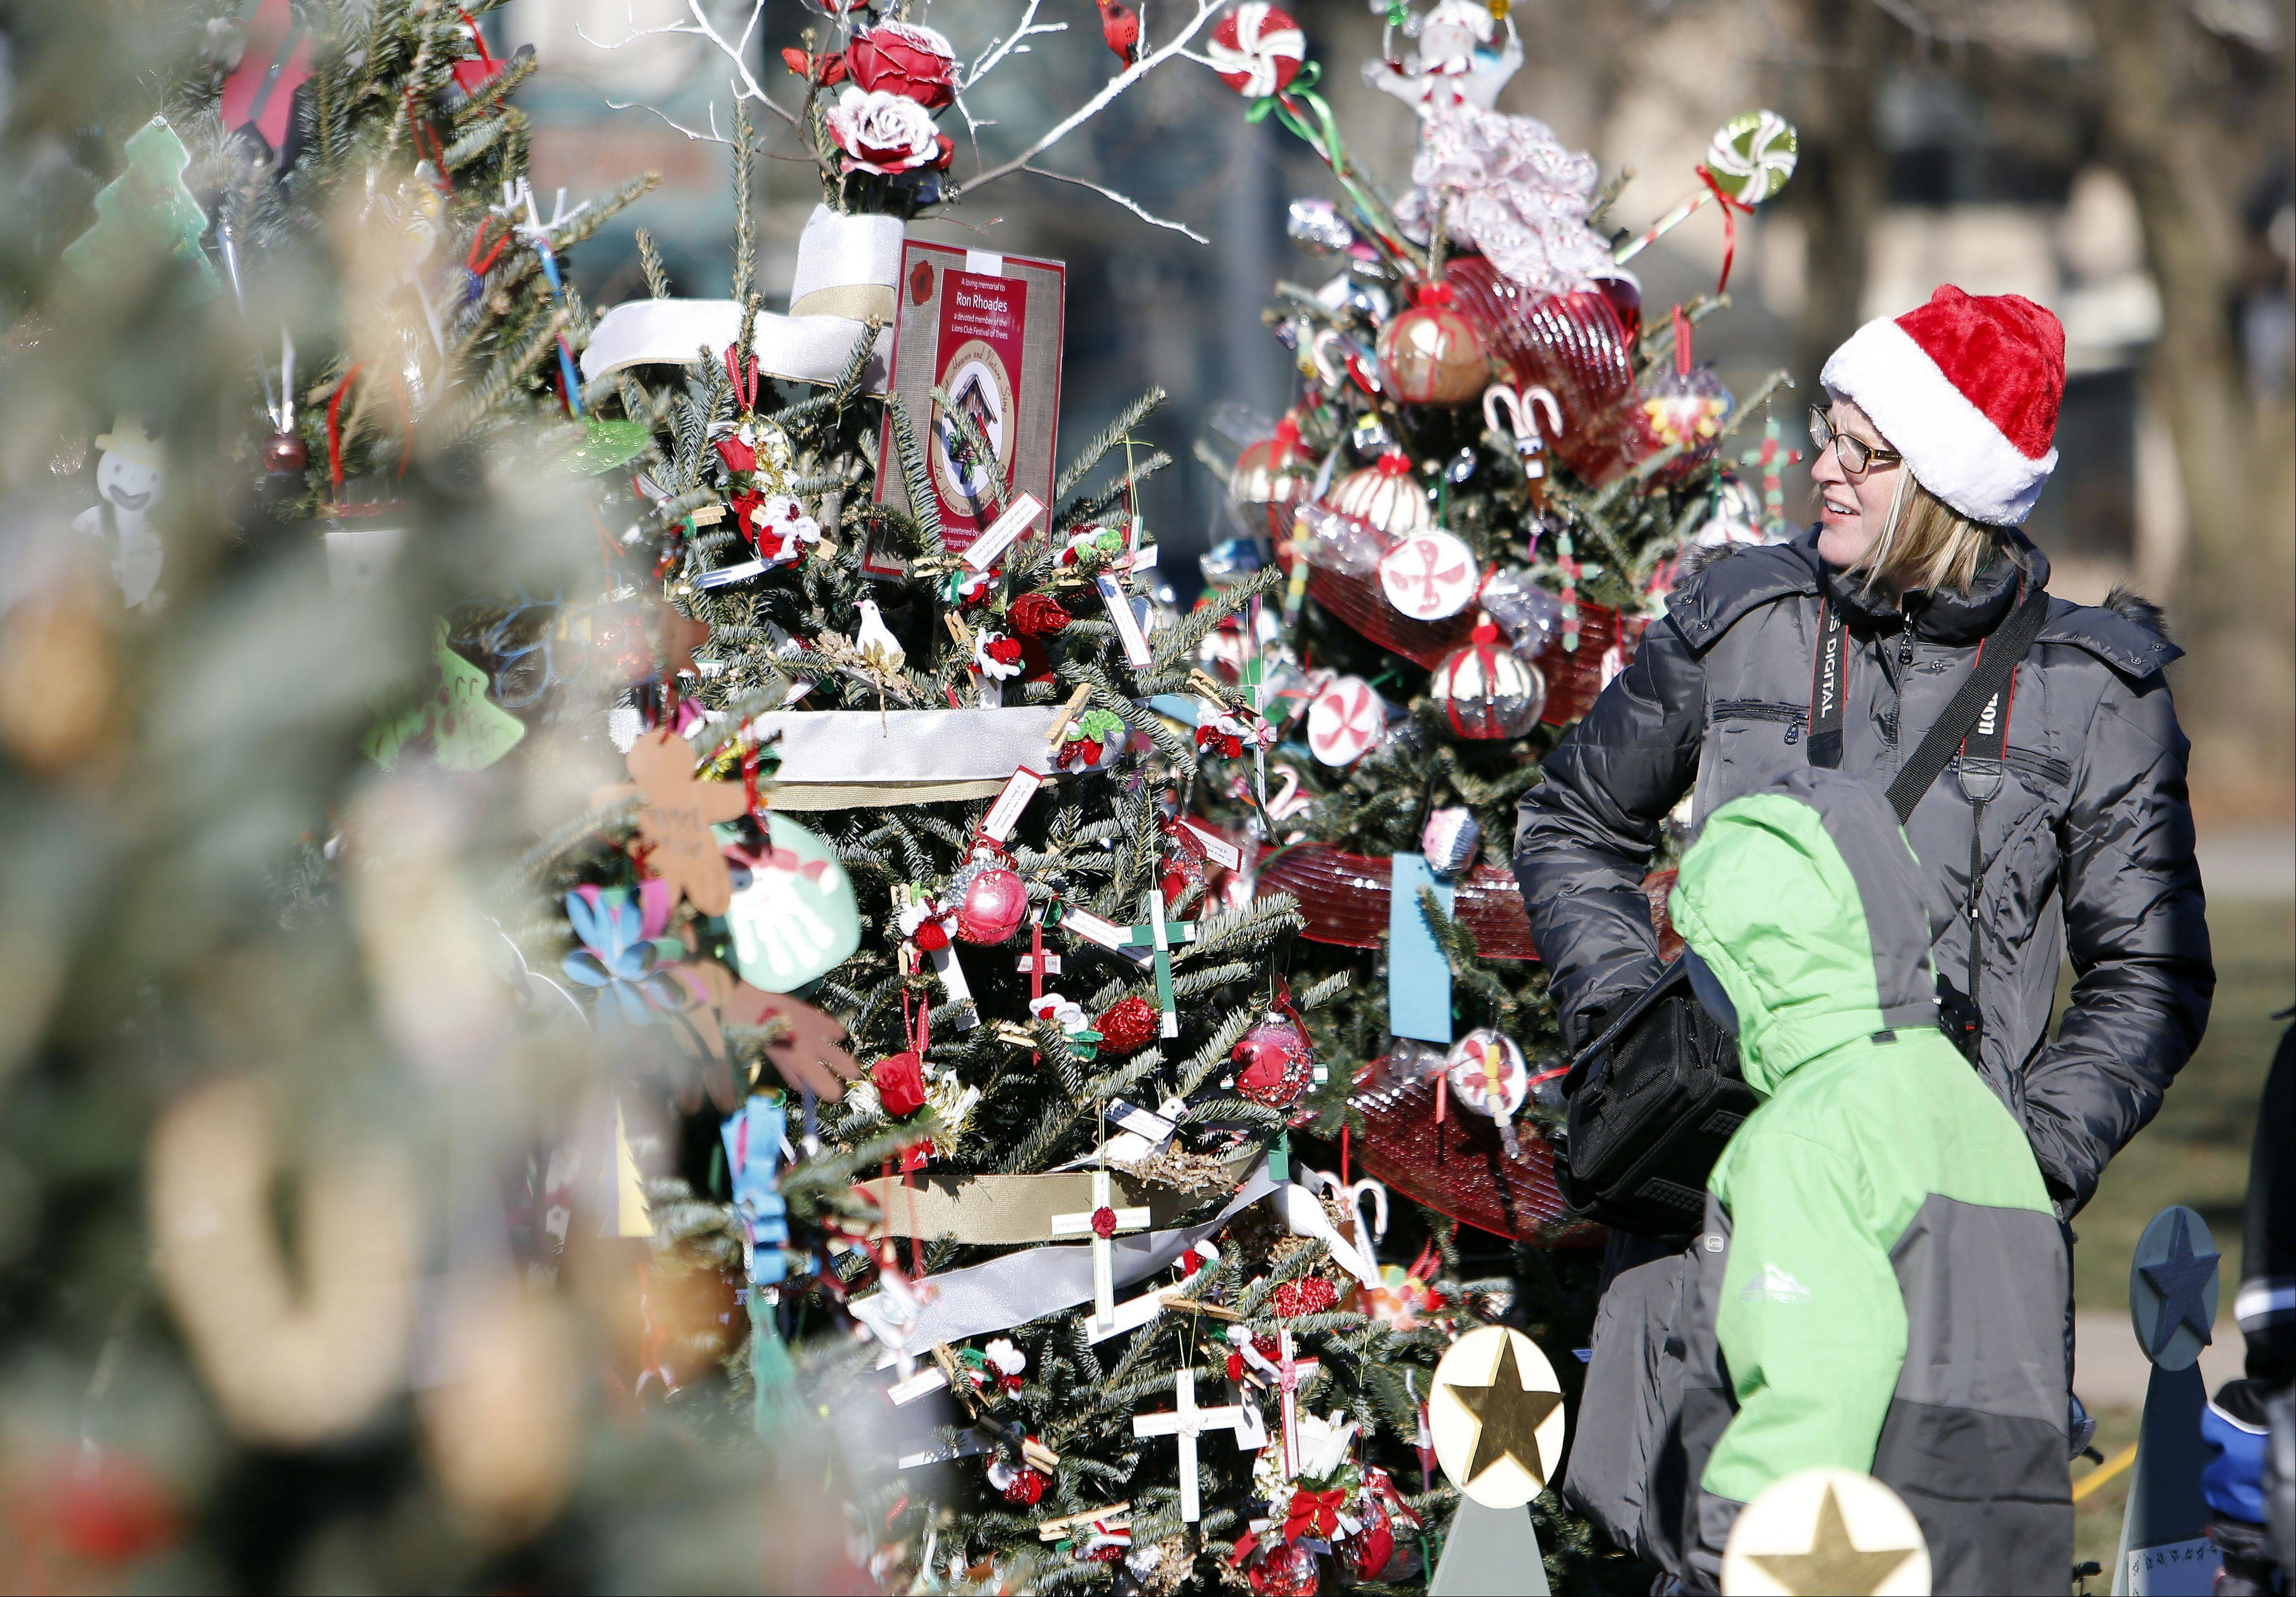 Sarah Schiltz of Carpentersville tries to find her children's ornaments on the Immanuel Lutheran Christmas tree during the Dickens in Dundee festival at Grafelman Park Saturday in West Dundee.